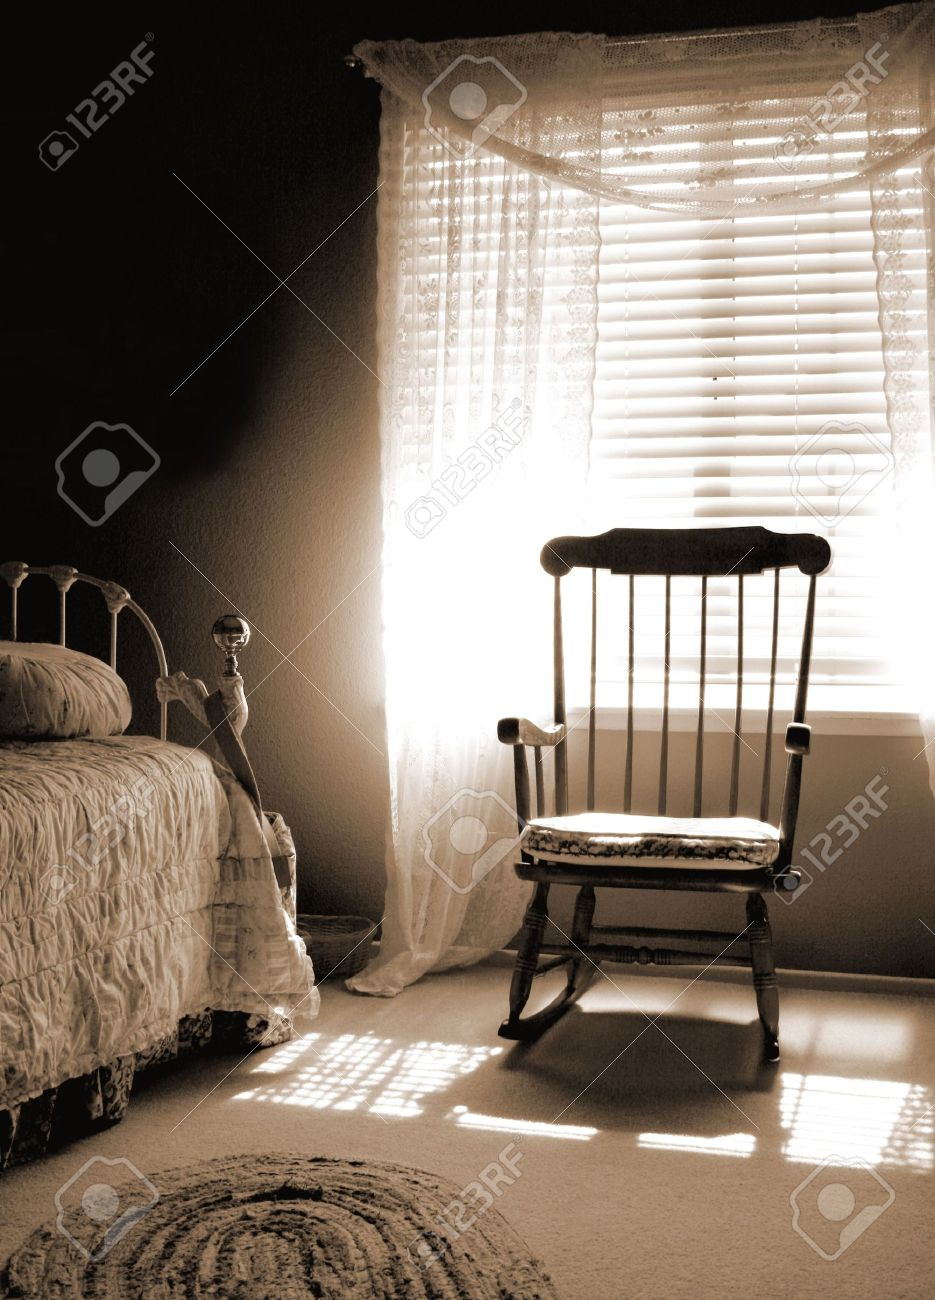 Amazing Stock Photo   Window Light Room Of Sepia Tones Old Fashioned Vintage Style  Bedroom With Sun Shining In From The Window On Rocking Chair And Bed.